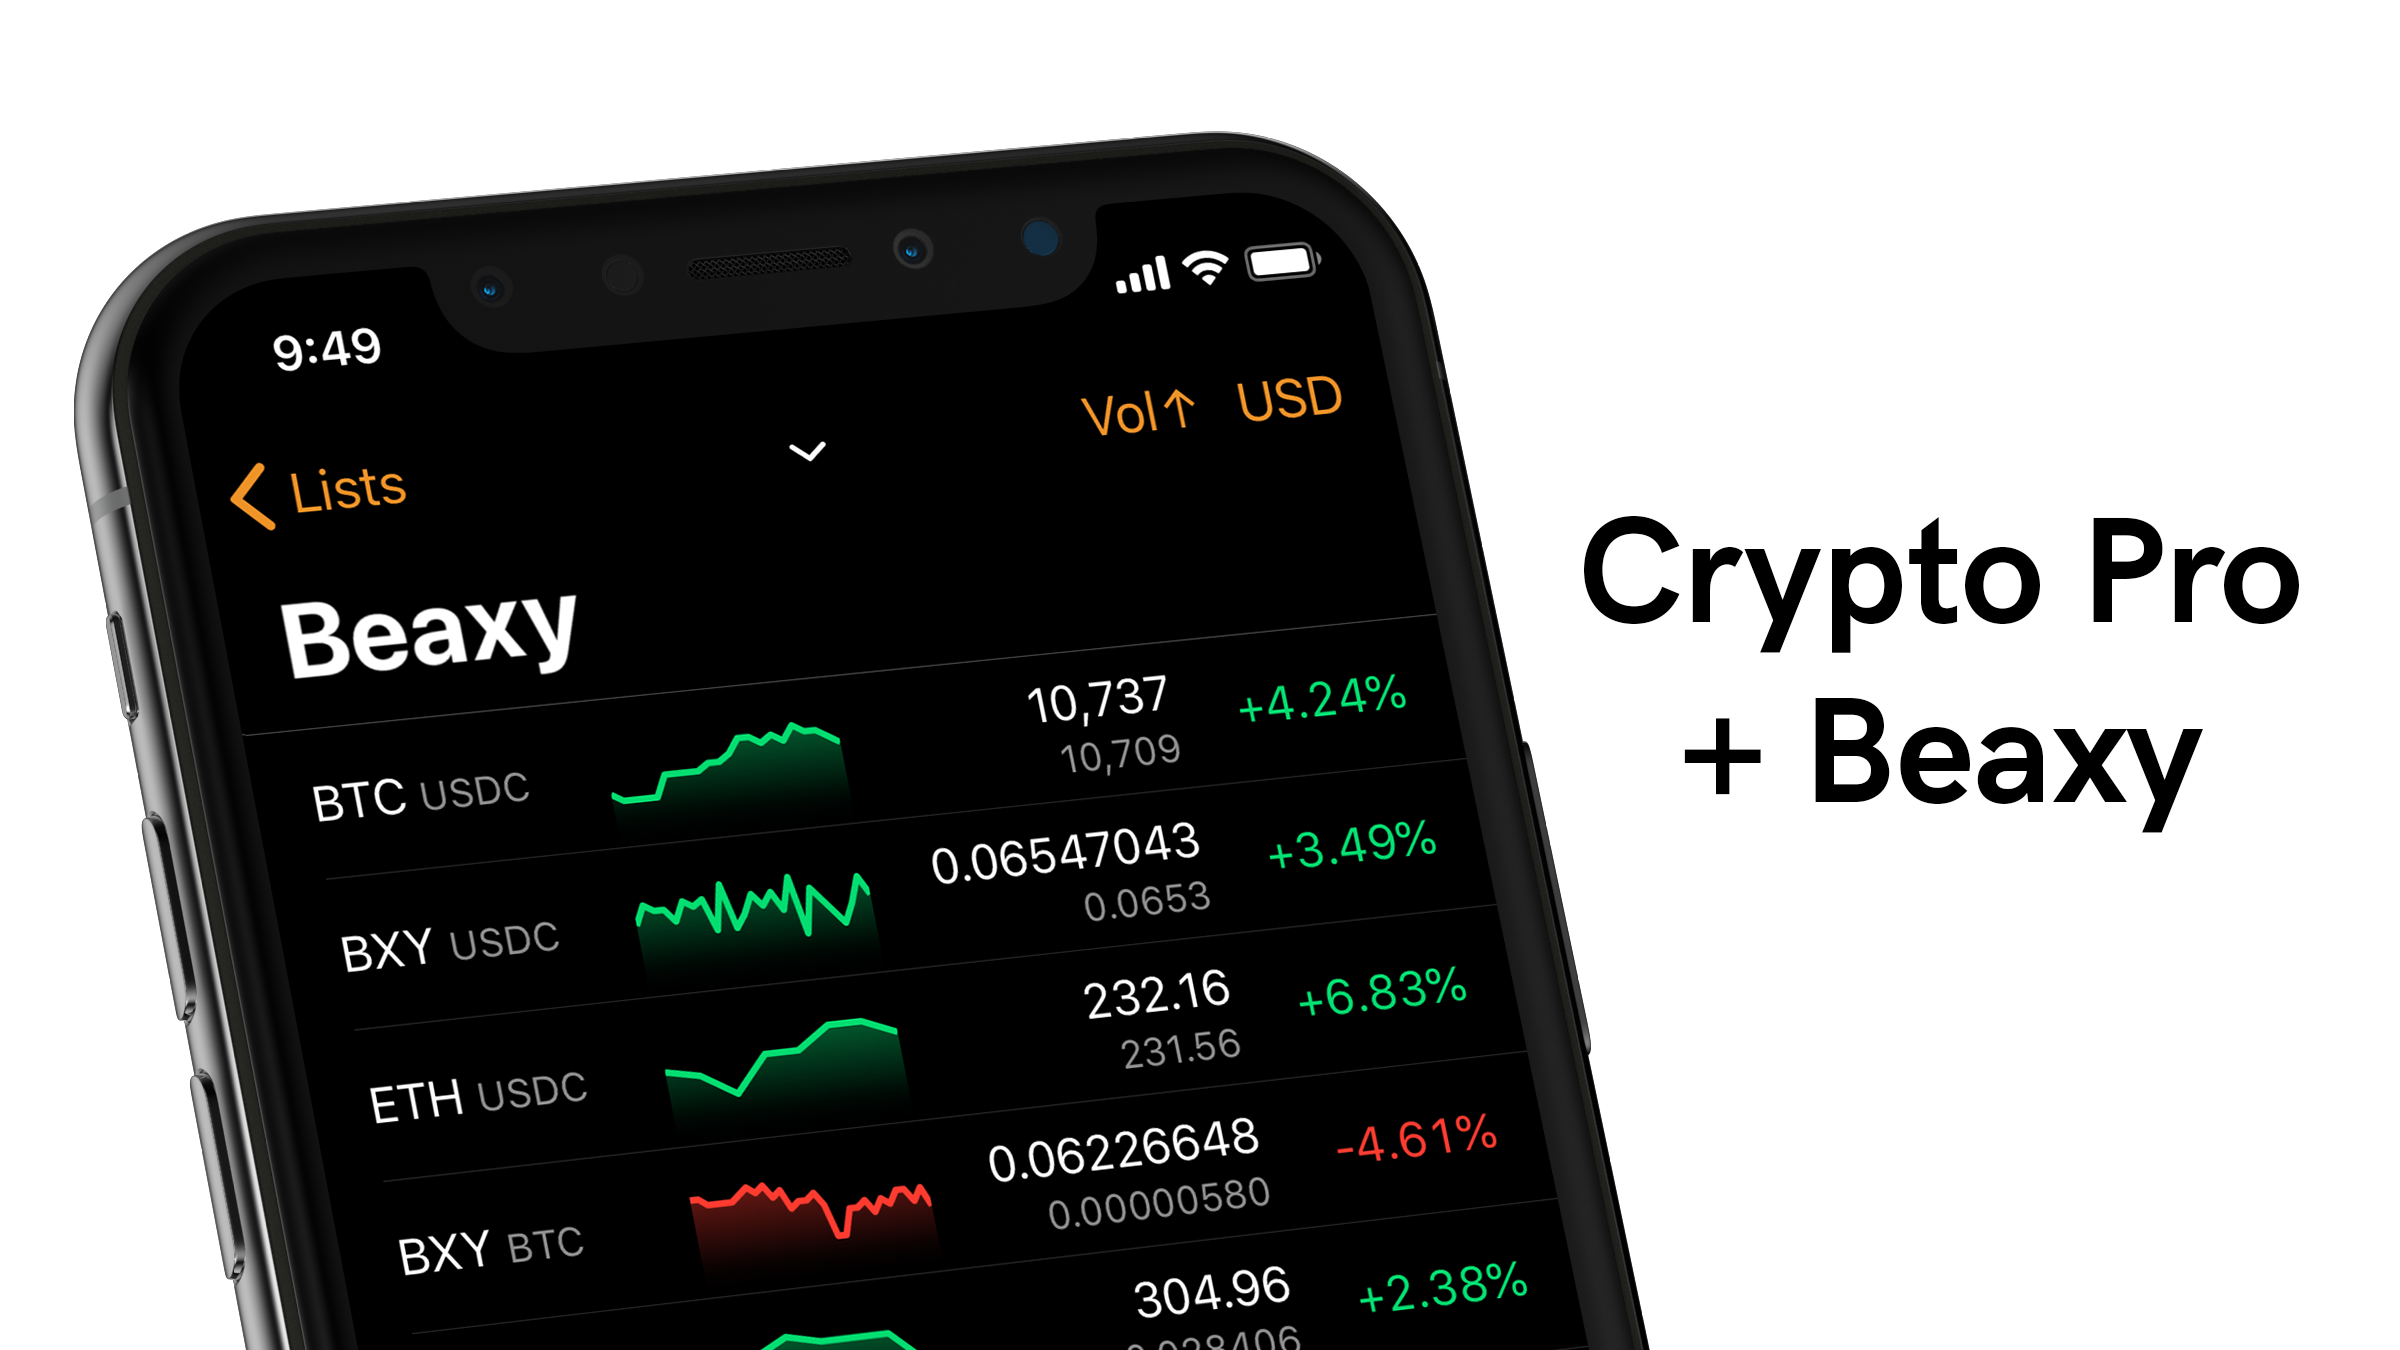 Crypto Pro app showing Beaxy exchange integration